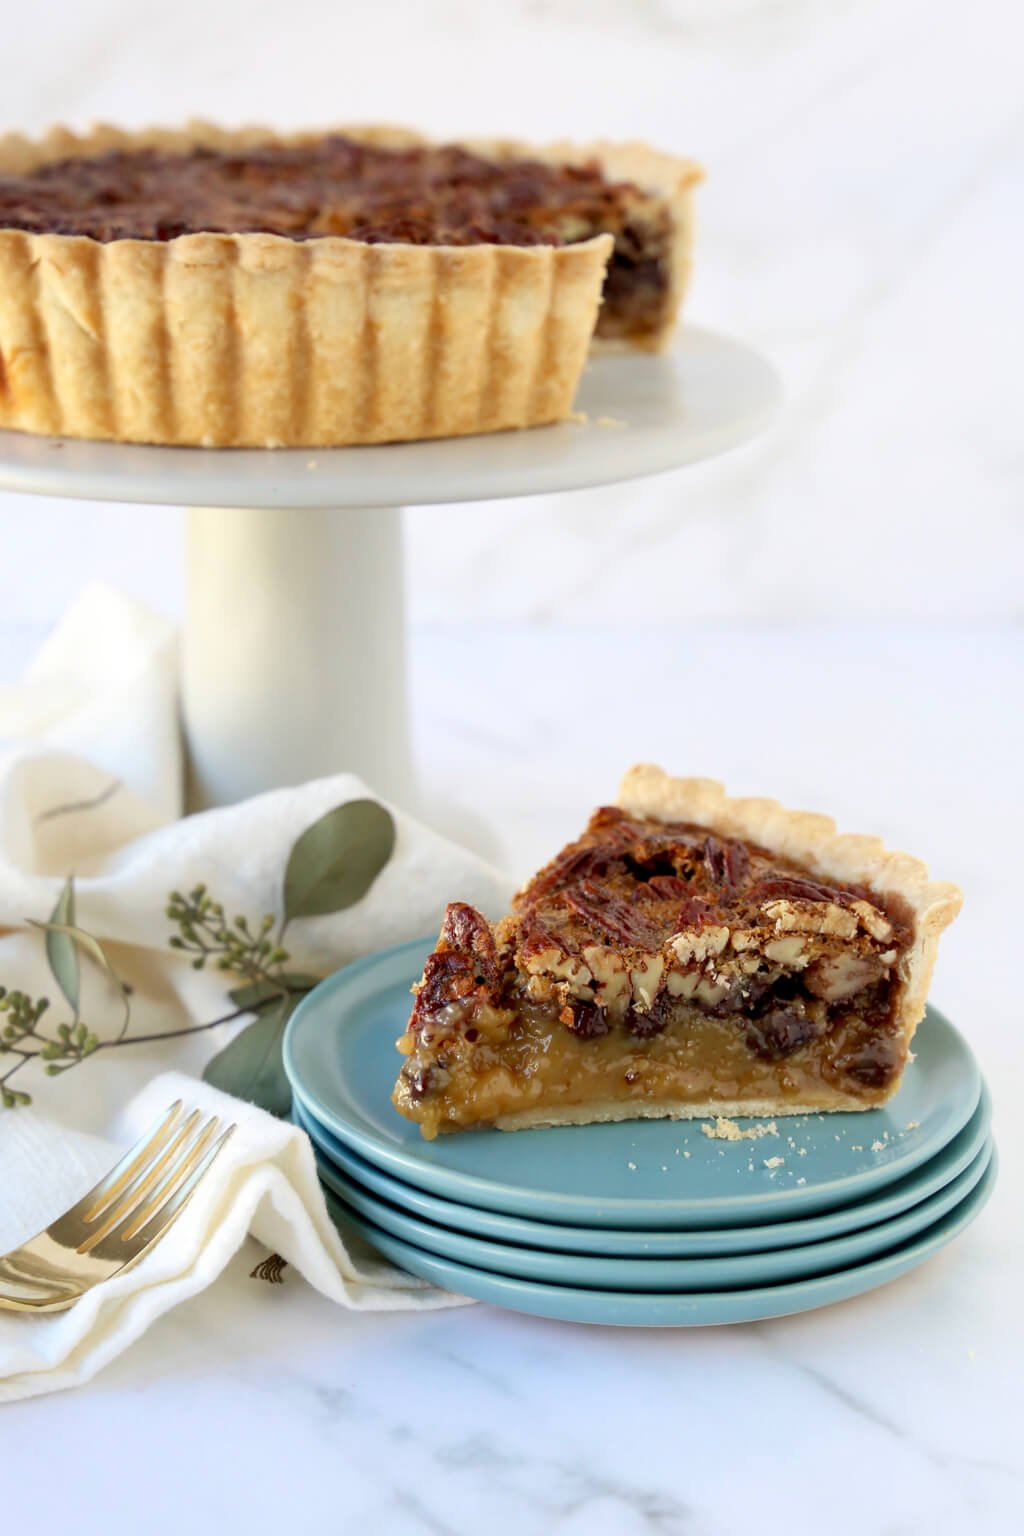 a slice of pecan tart on a stack of dishes and the full tart behind it